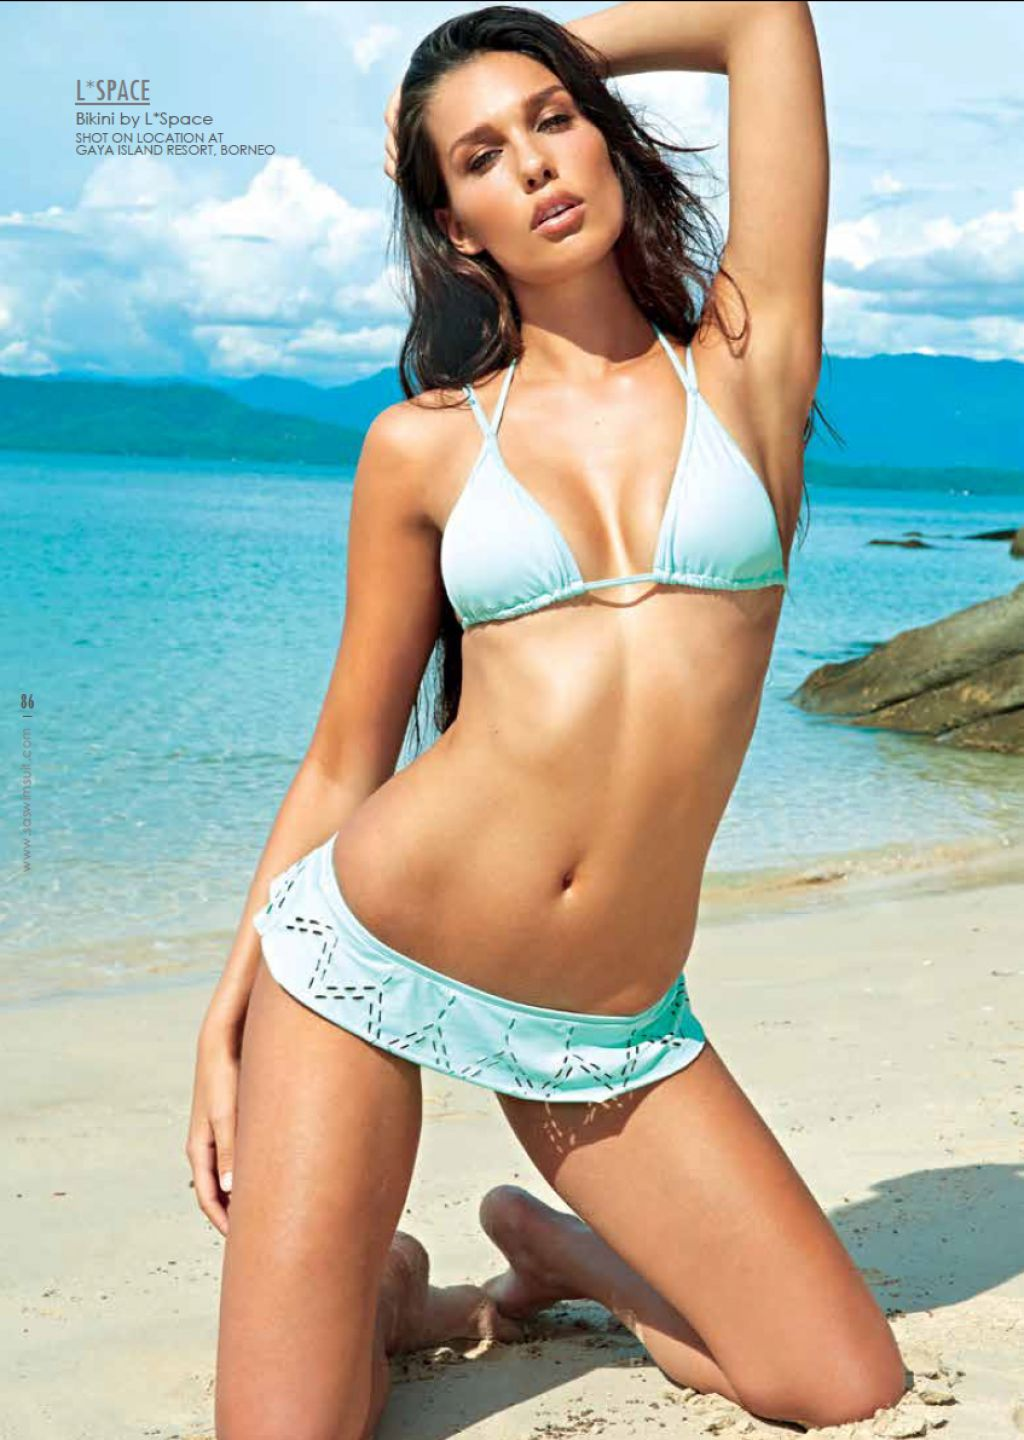 Careen Truter Bikini Photoshoot - South African Swimsuit 2013